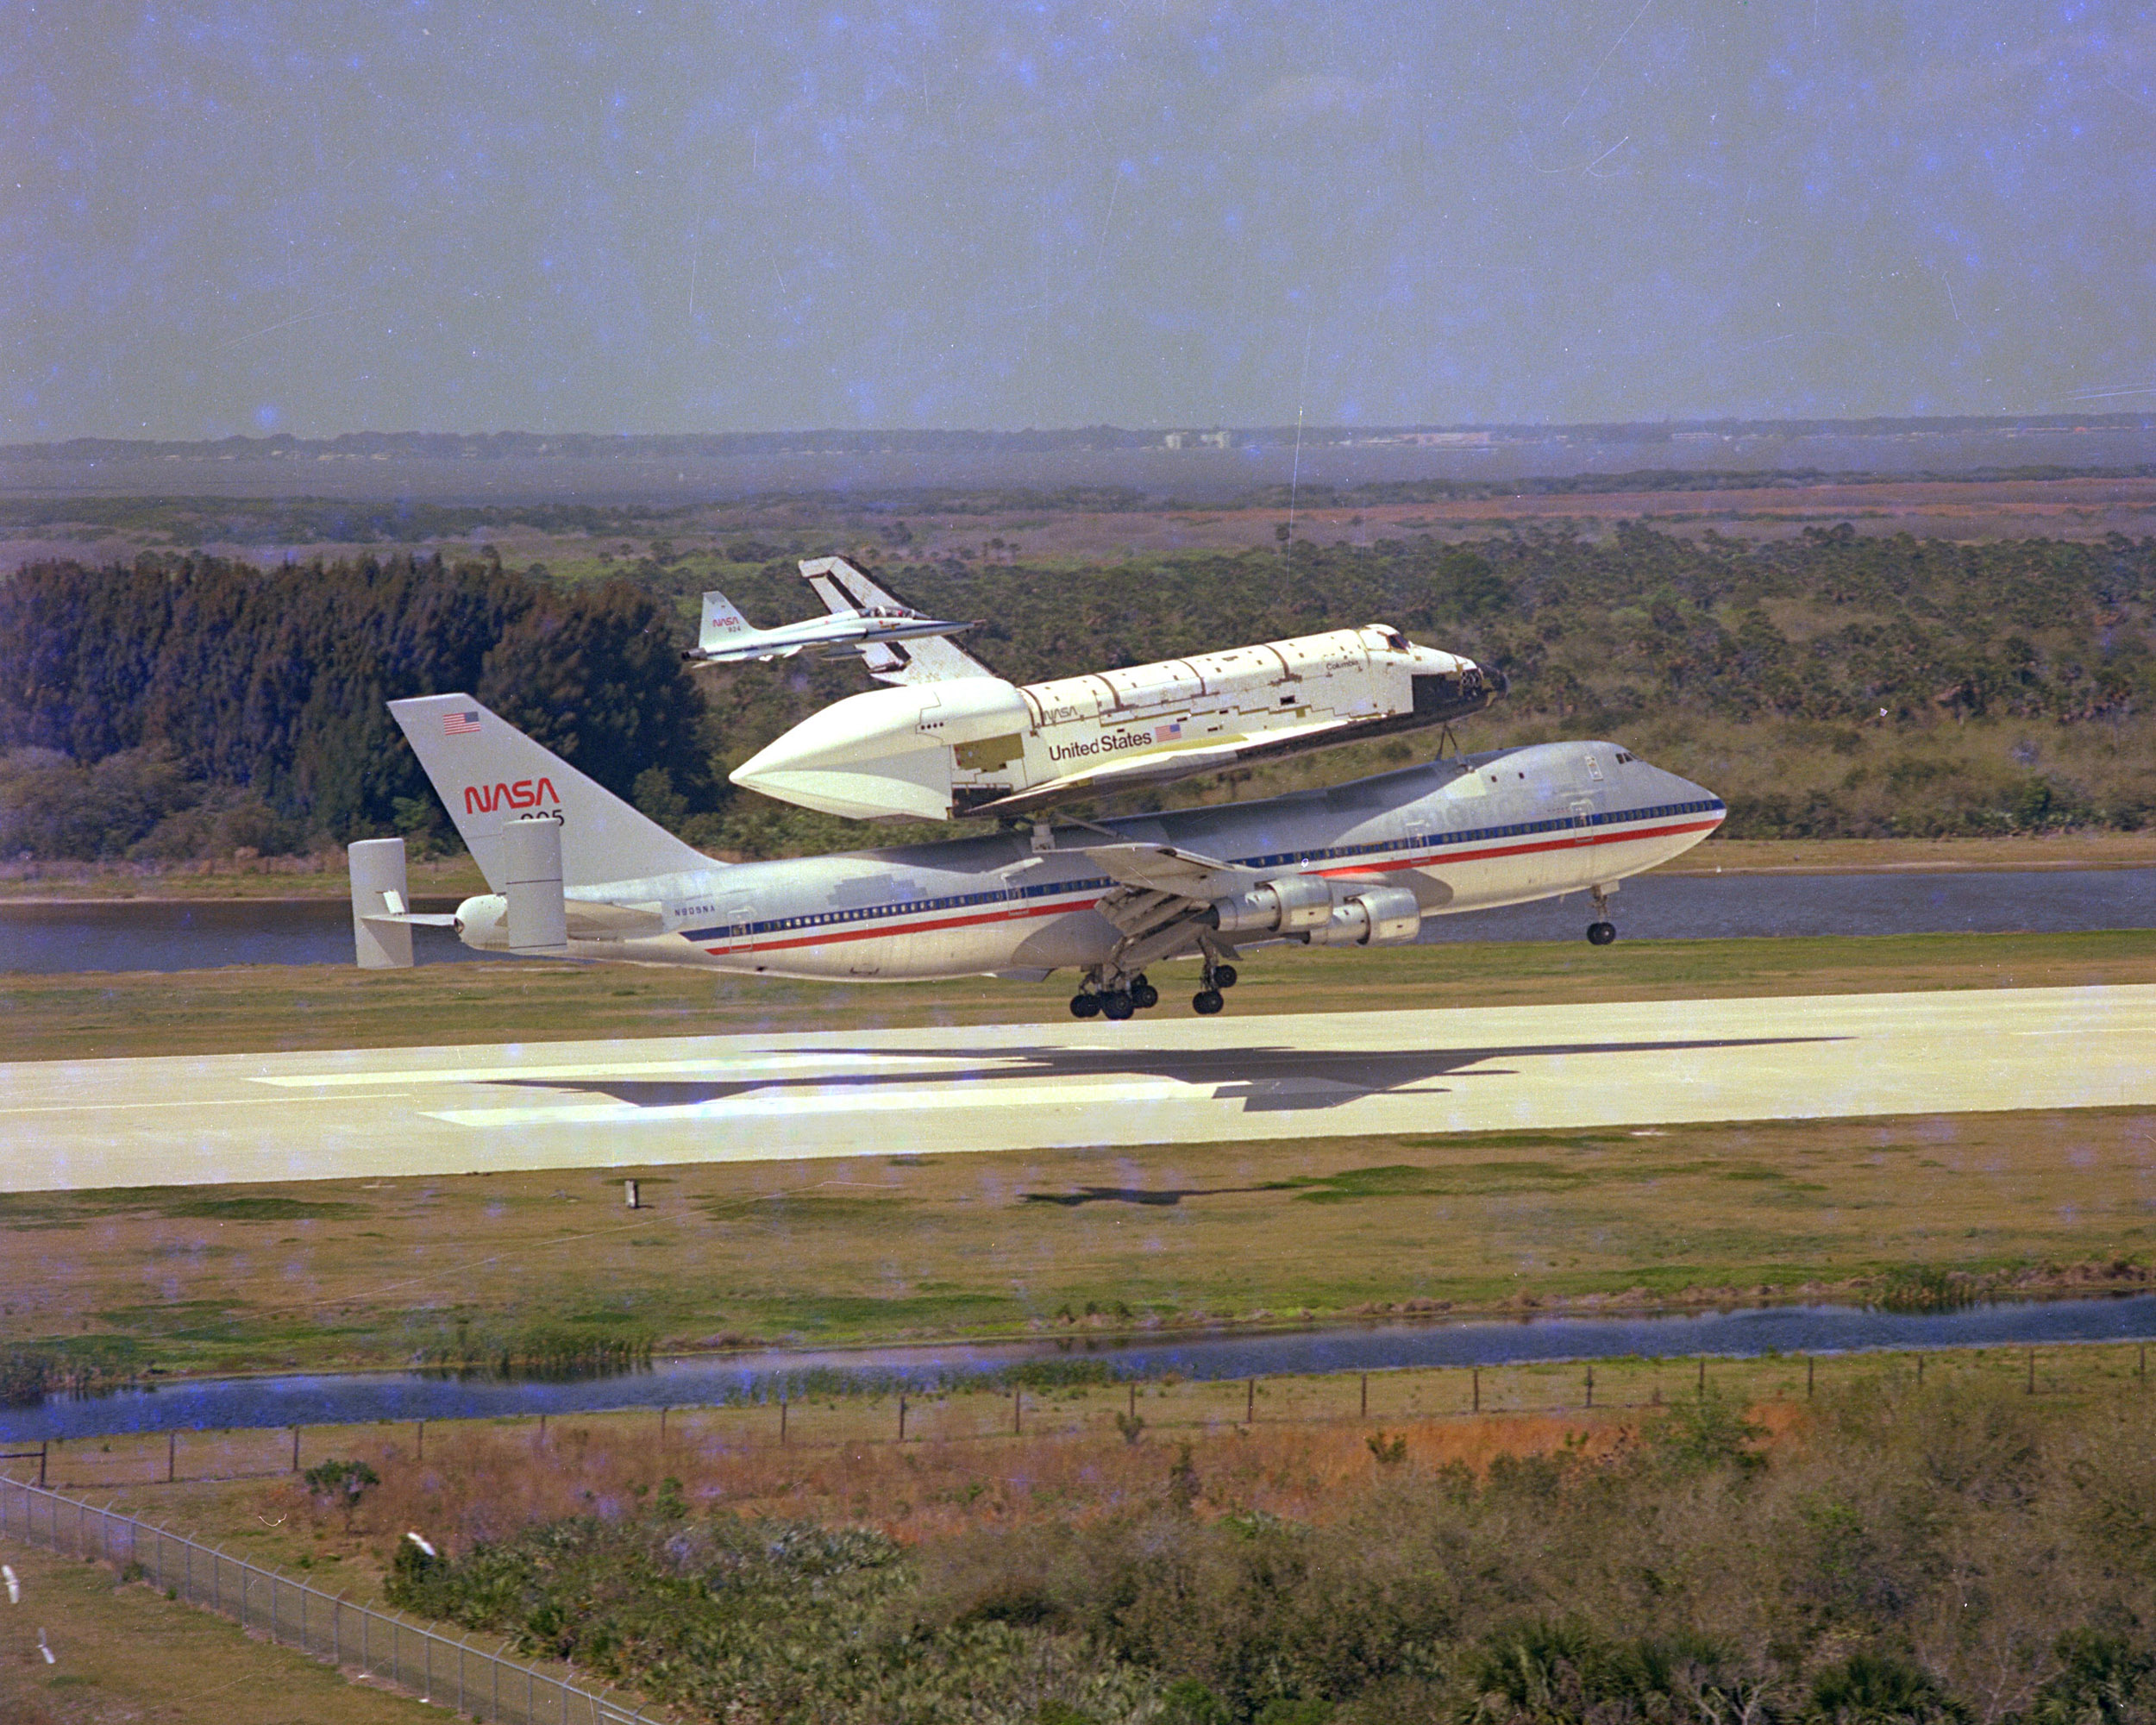 Space Shuttle Piggyback On 747 - Pics about space